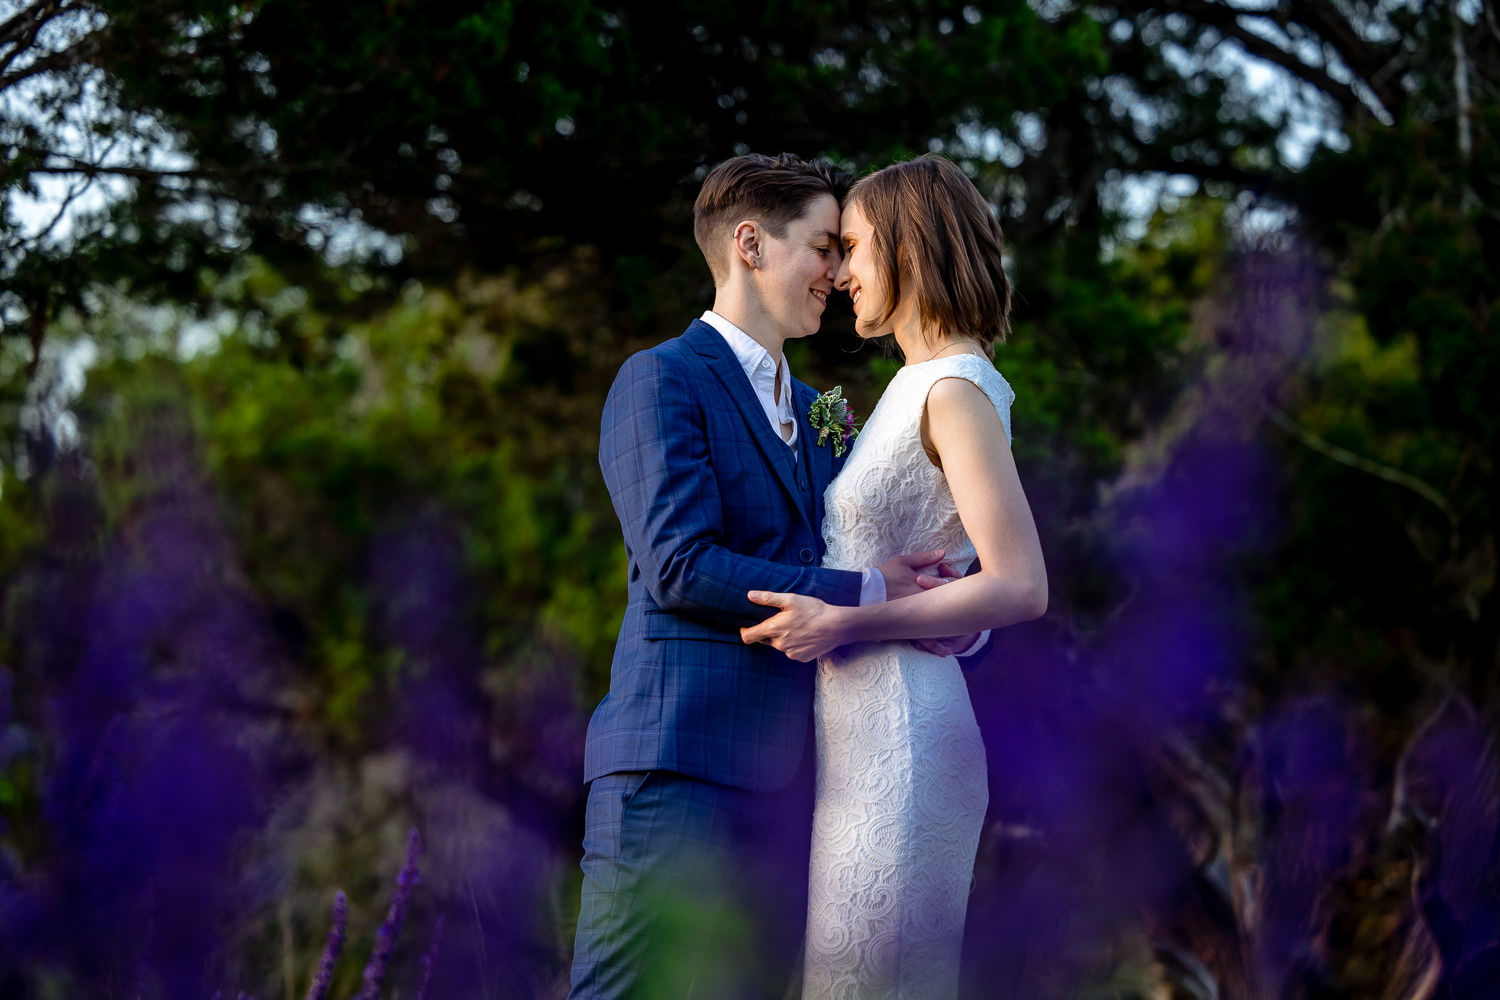 Self-care Tips While Planning a Wedding